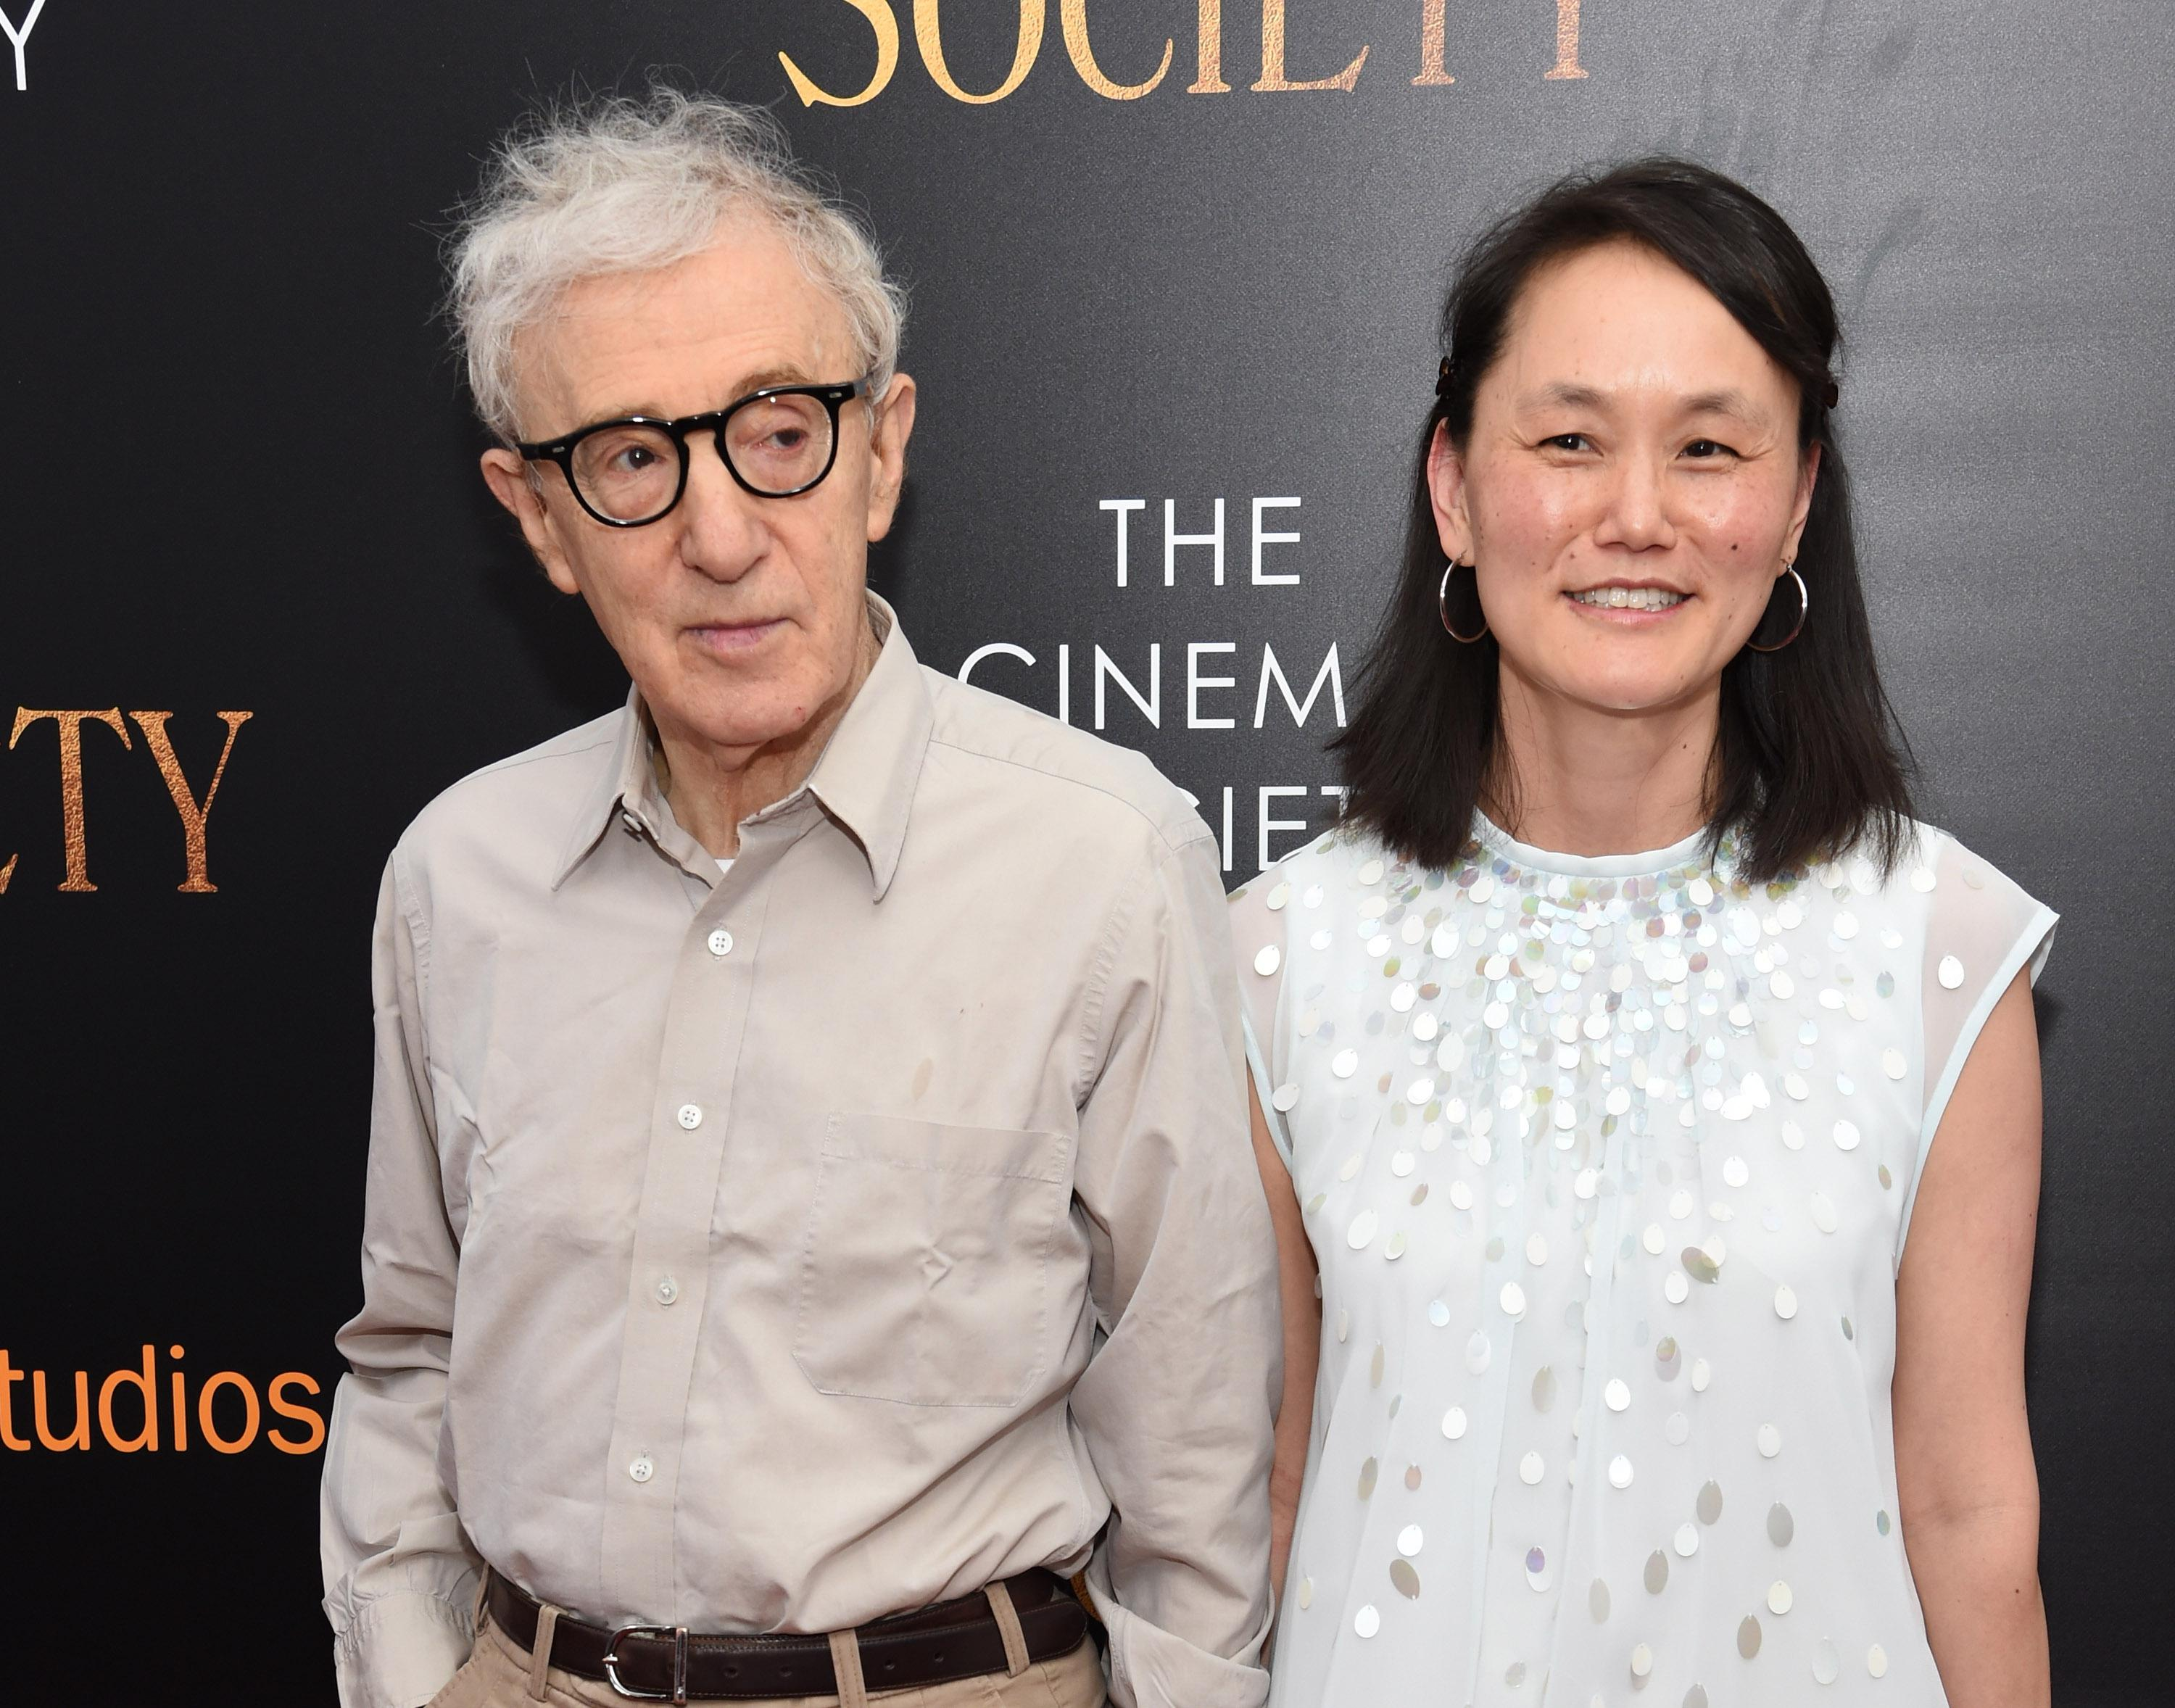 Woody Allen and Soon-Yi Previn, smiling on a red carpet.